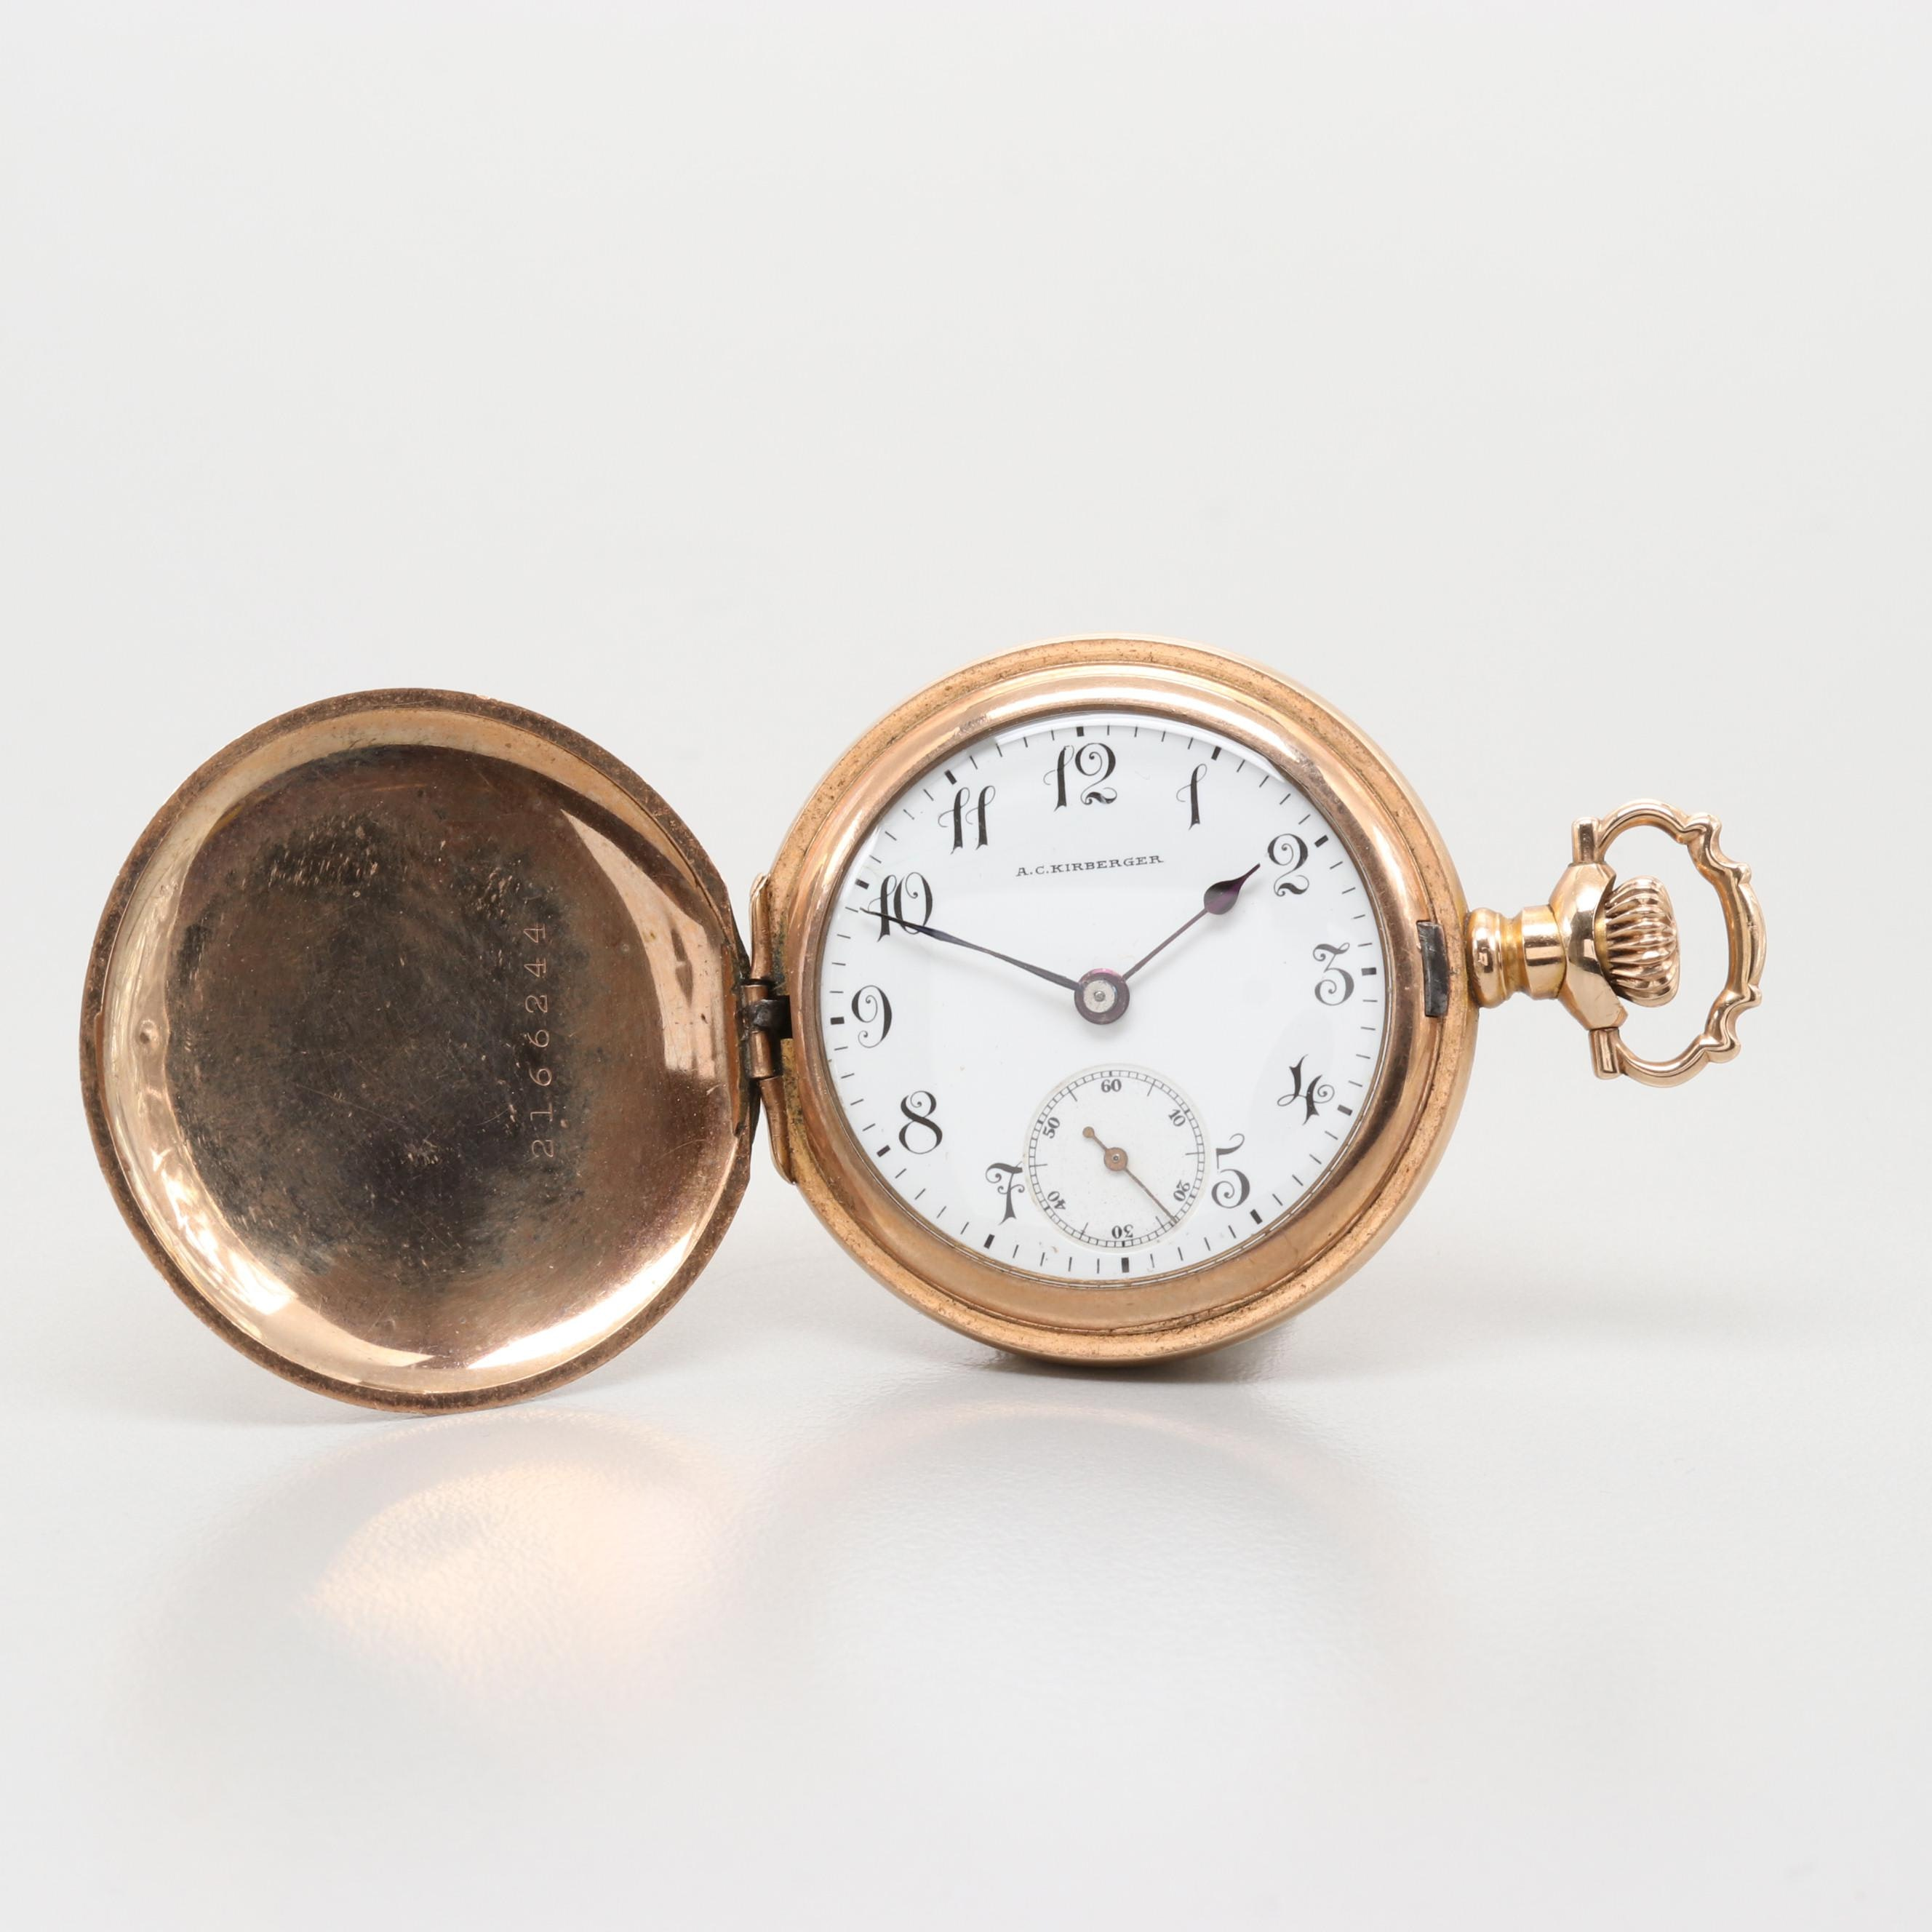 Longines Gold Filled Hunting Case Pocket Watch For A.C. Kirkberger, Circa 1907